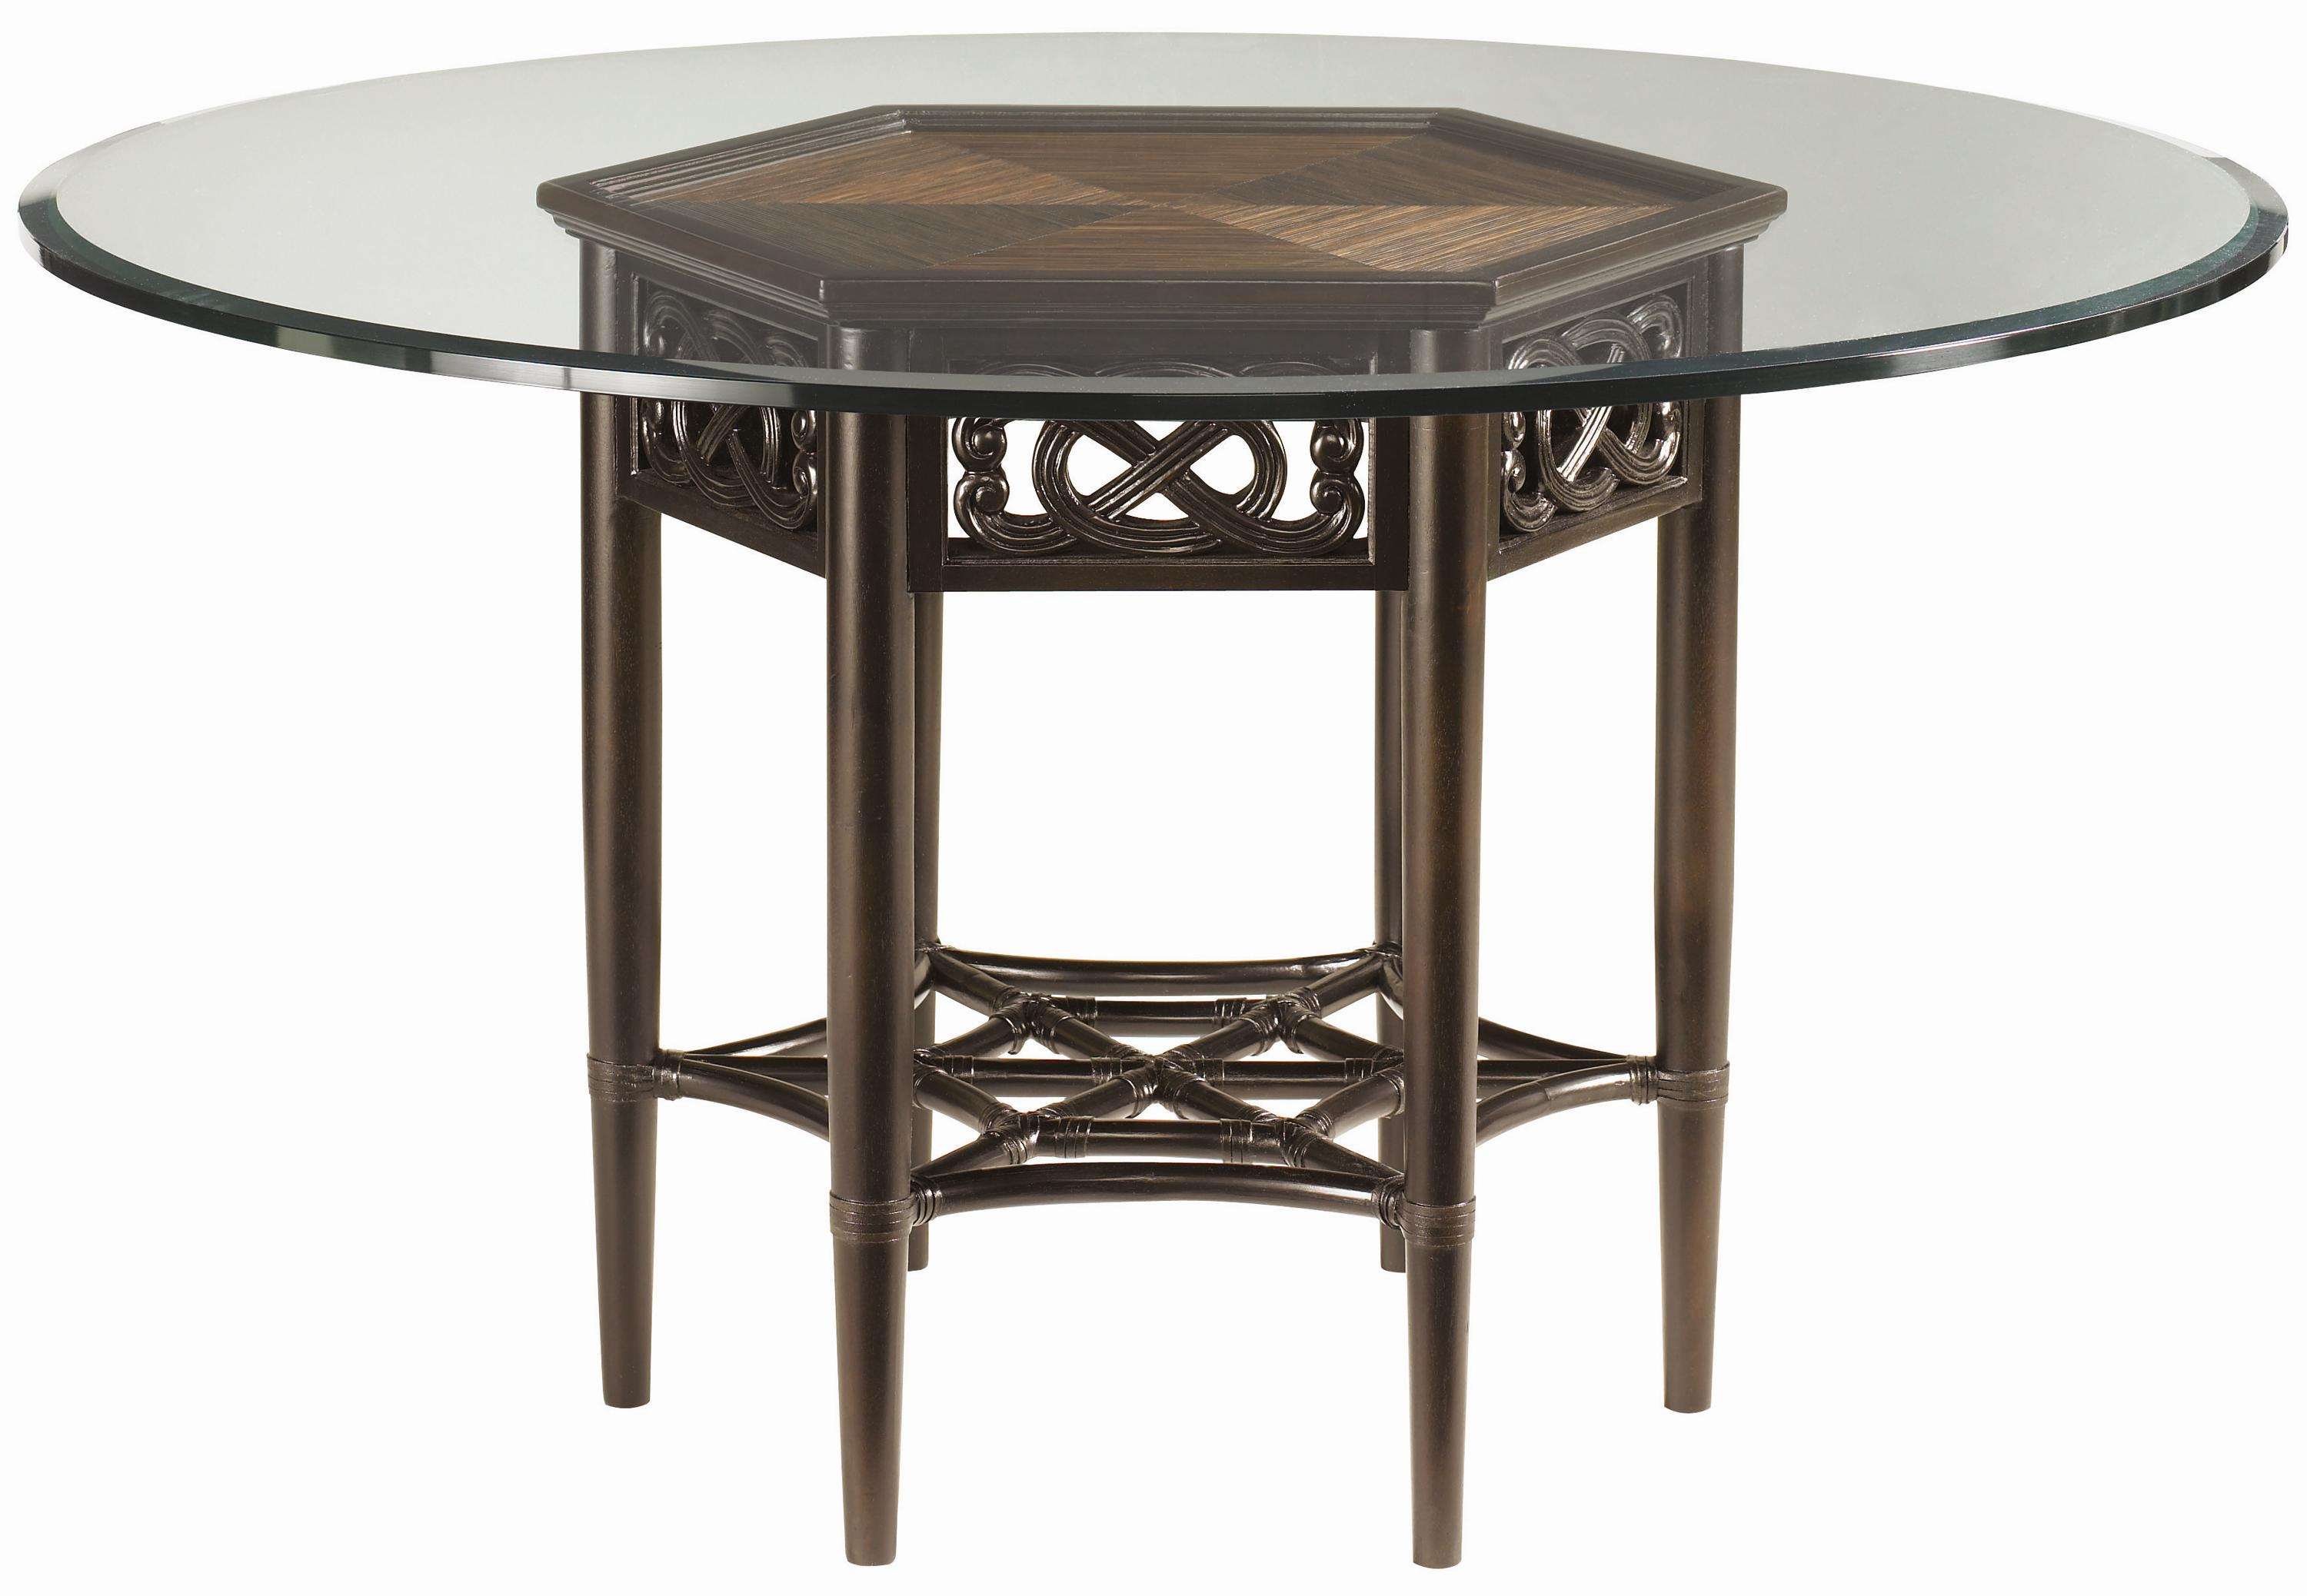 "Royal Kahala 54"" Sugar and Lace Table by Tommy Bahama Home at Baer's Furniture"